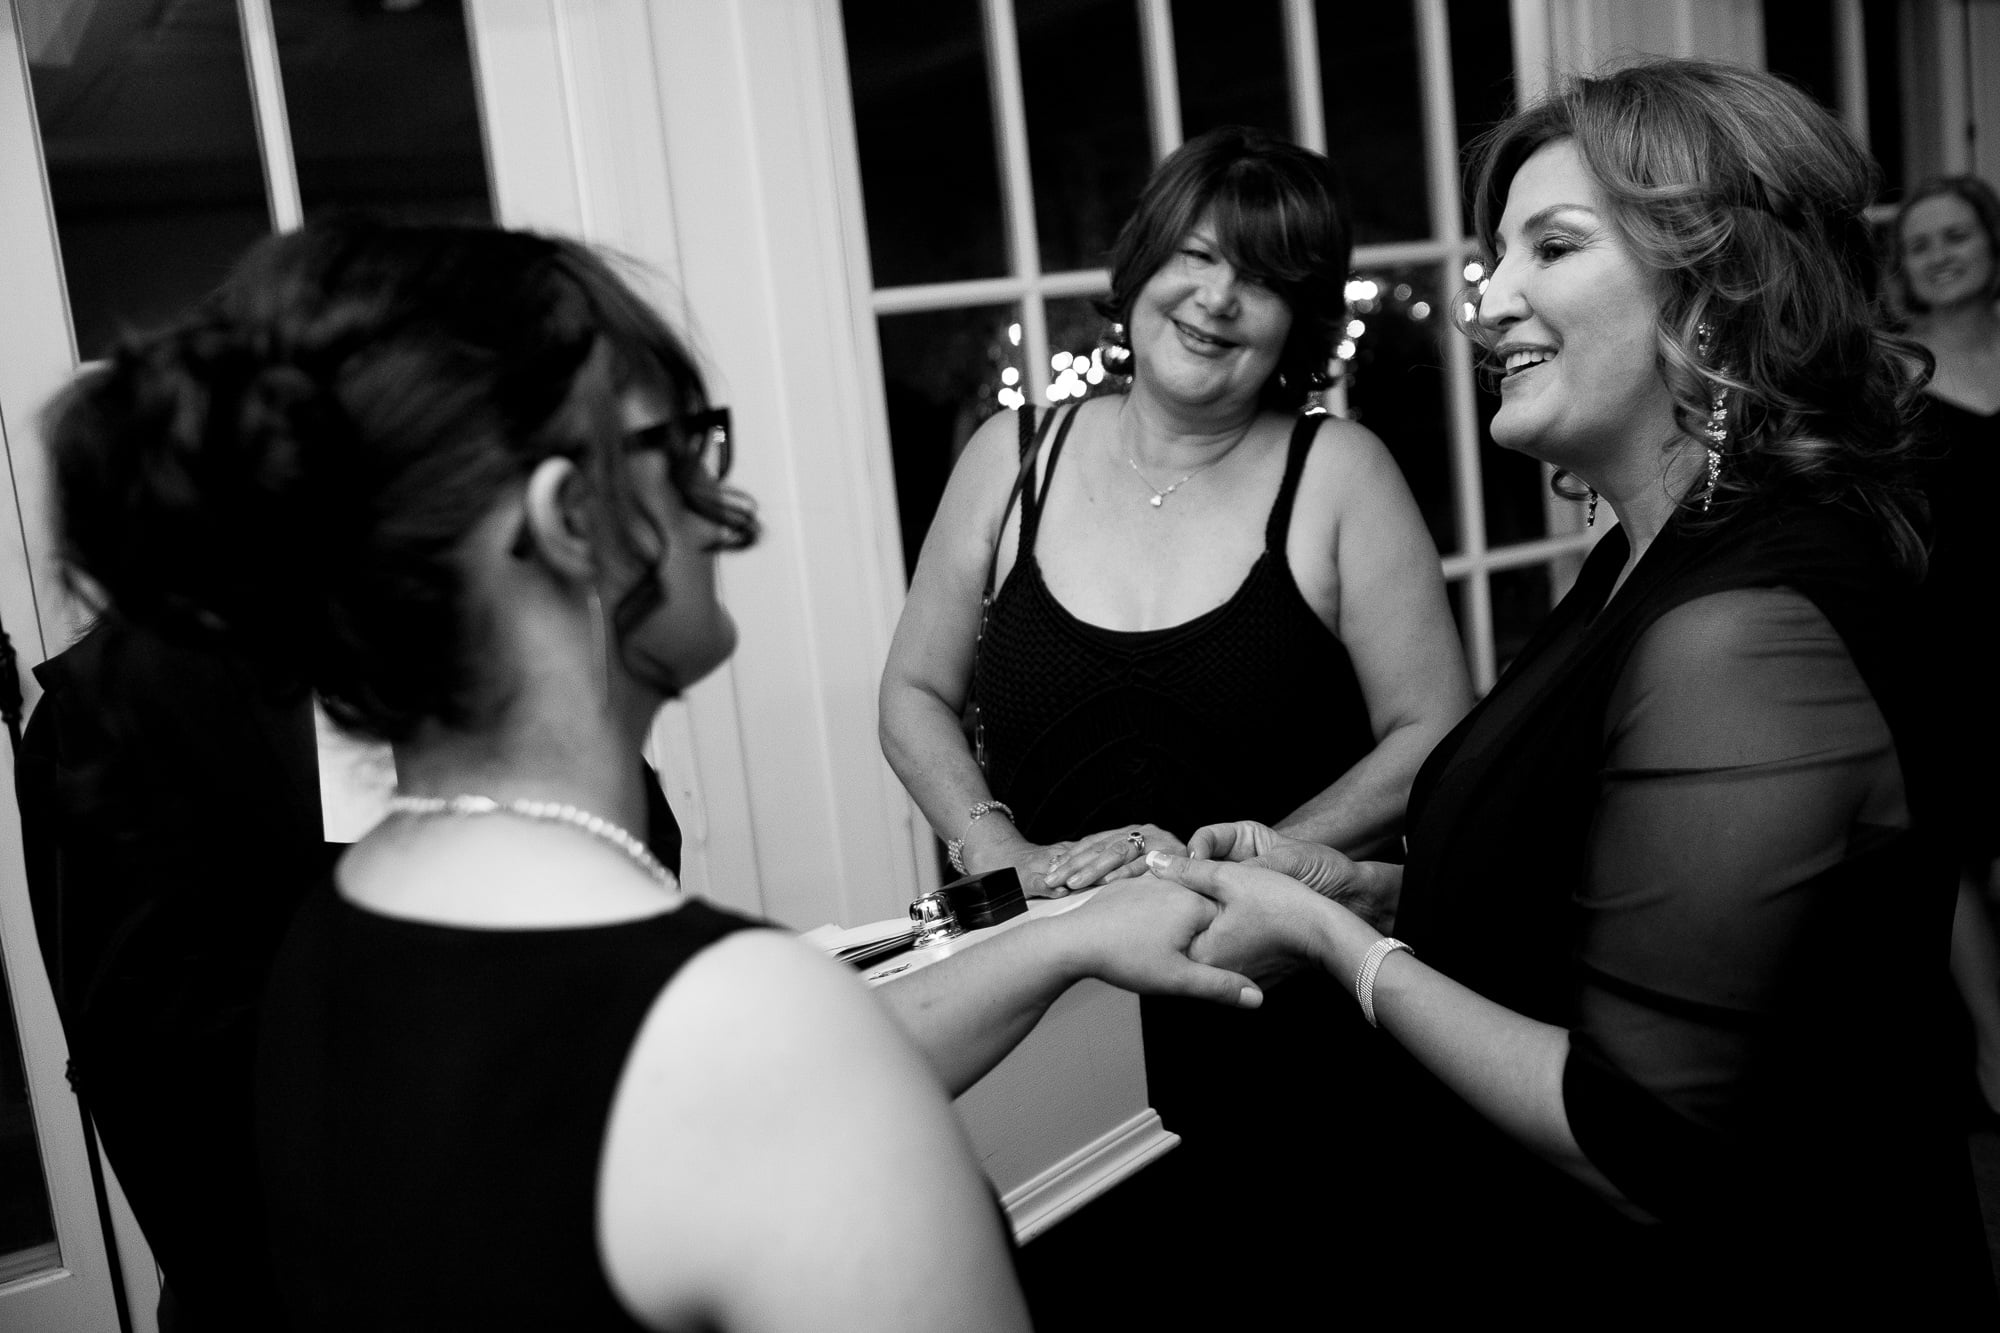 Renee + Senem exchange vows during their wedding ceremony at Langdon Hall.